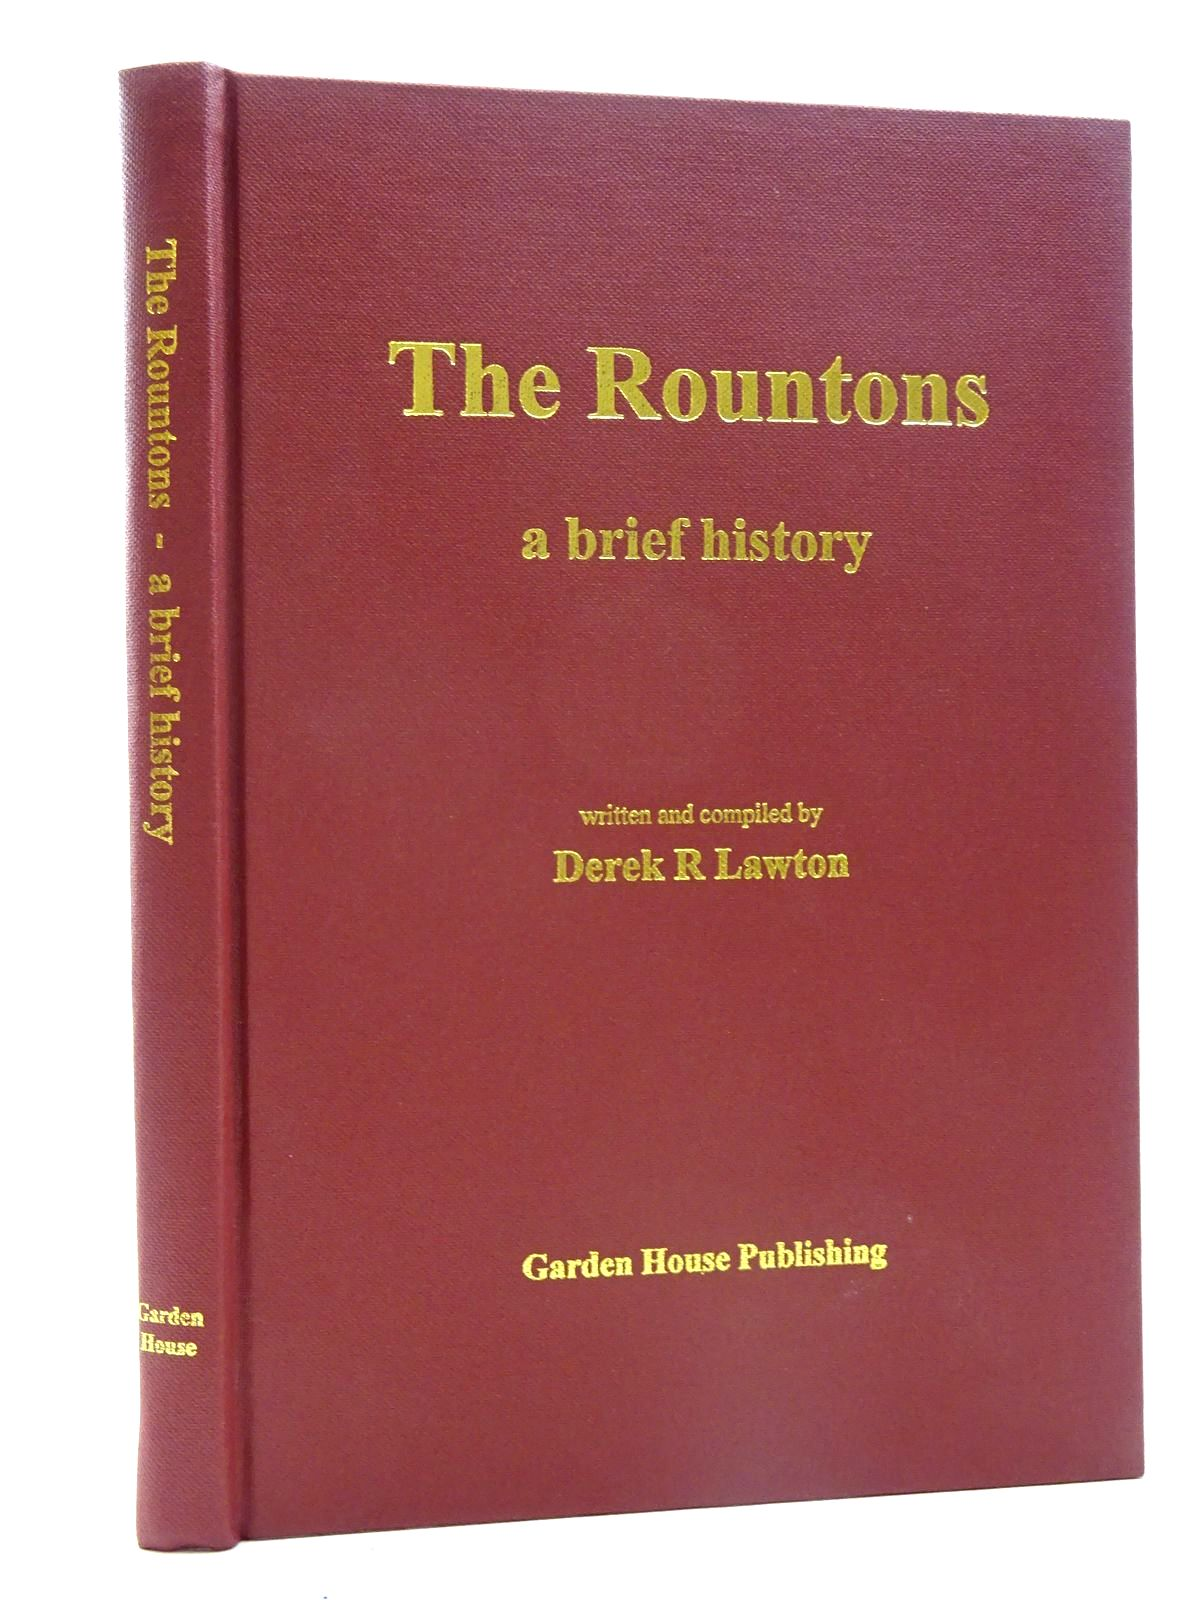 Photo of THE ROUNTONS A BRIEF HISTORY written by Lawton, Derek R. published by Garden House Publishing (STOCK CODE: 2125749)  for sale by Stella & Rose's Books